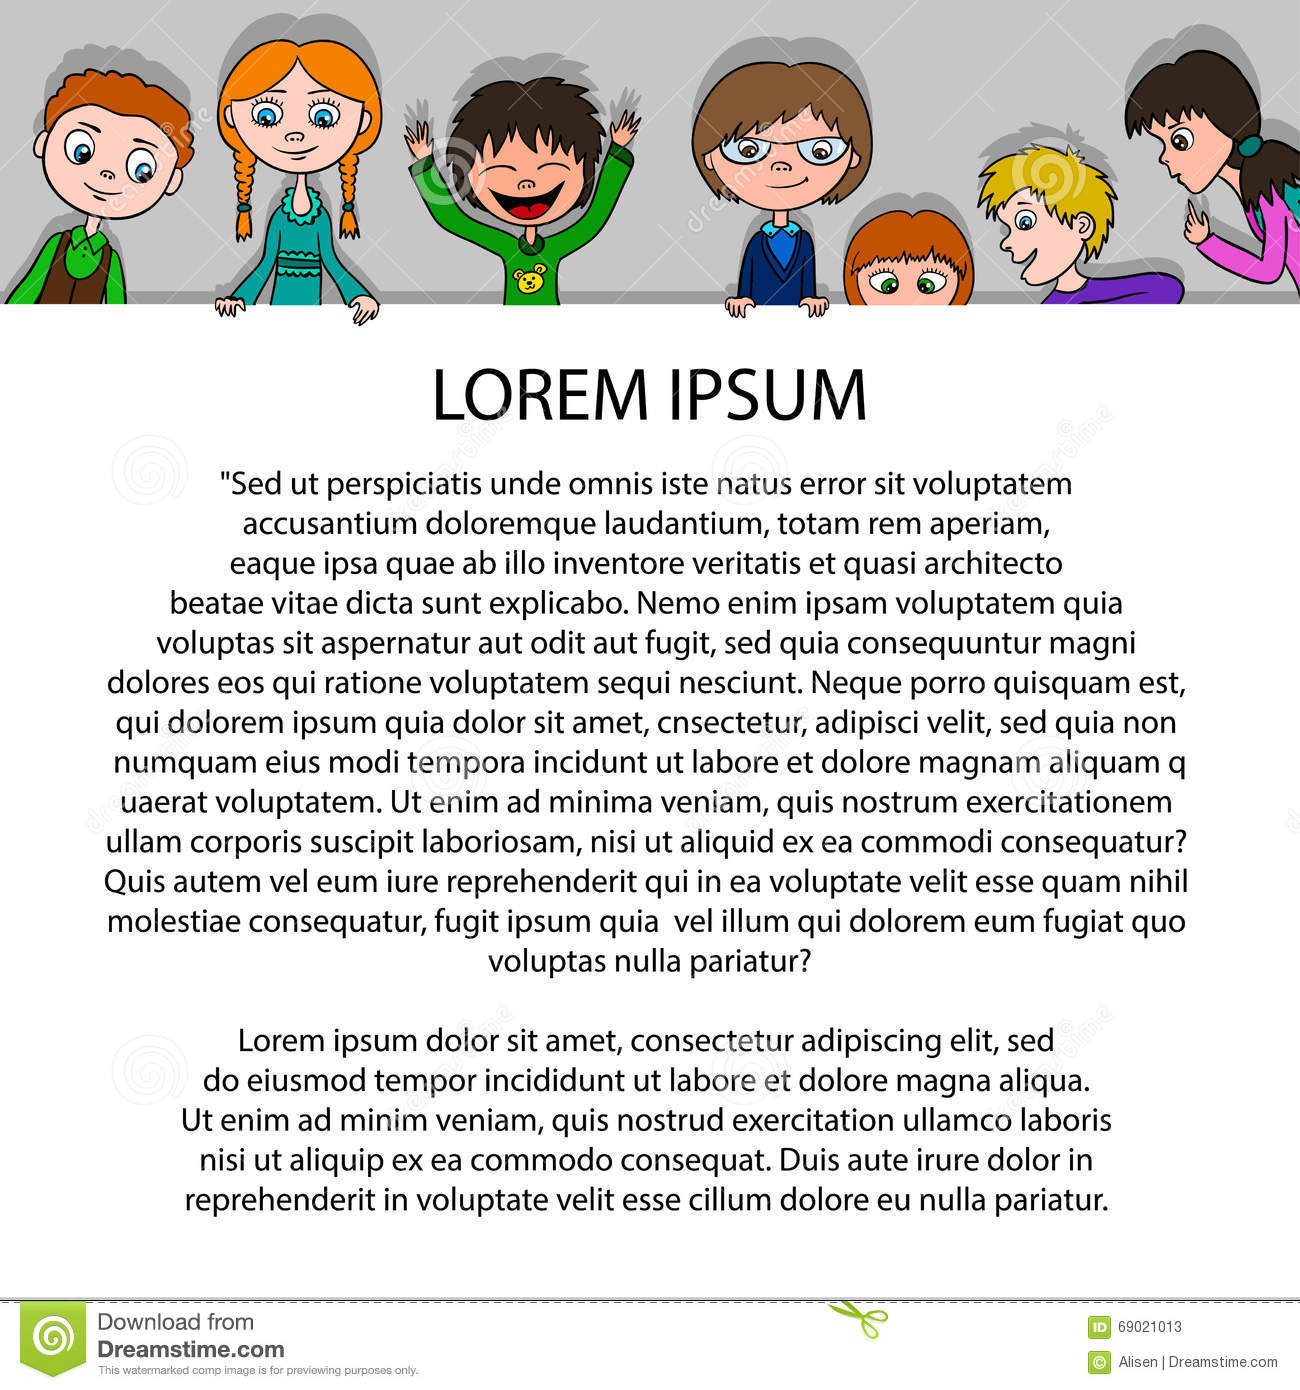 frame for text in cartoon style with funny kids on paper template